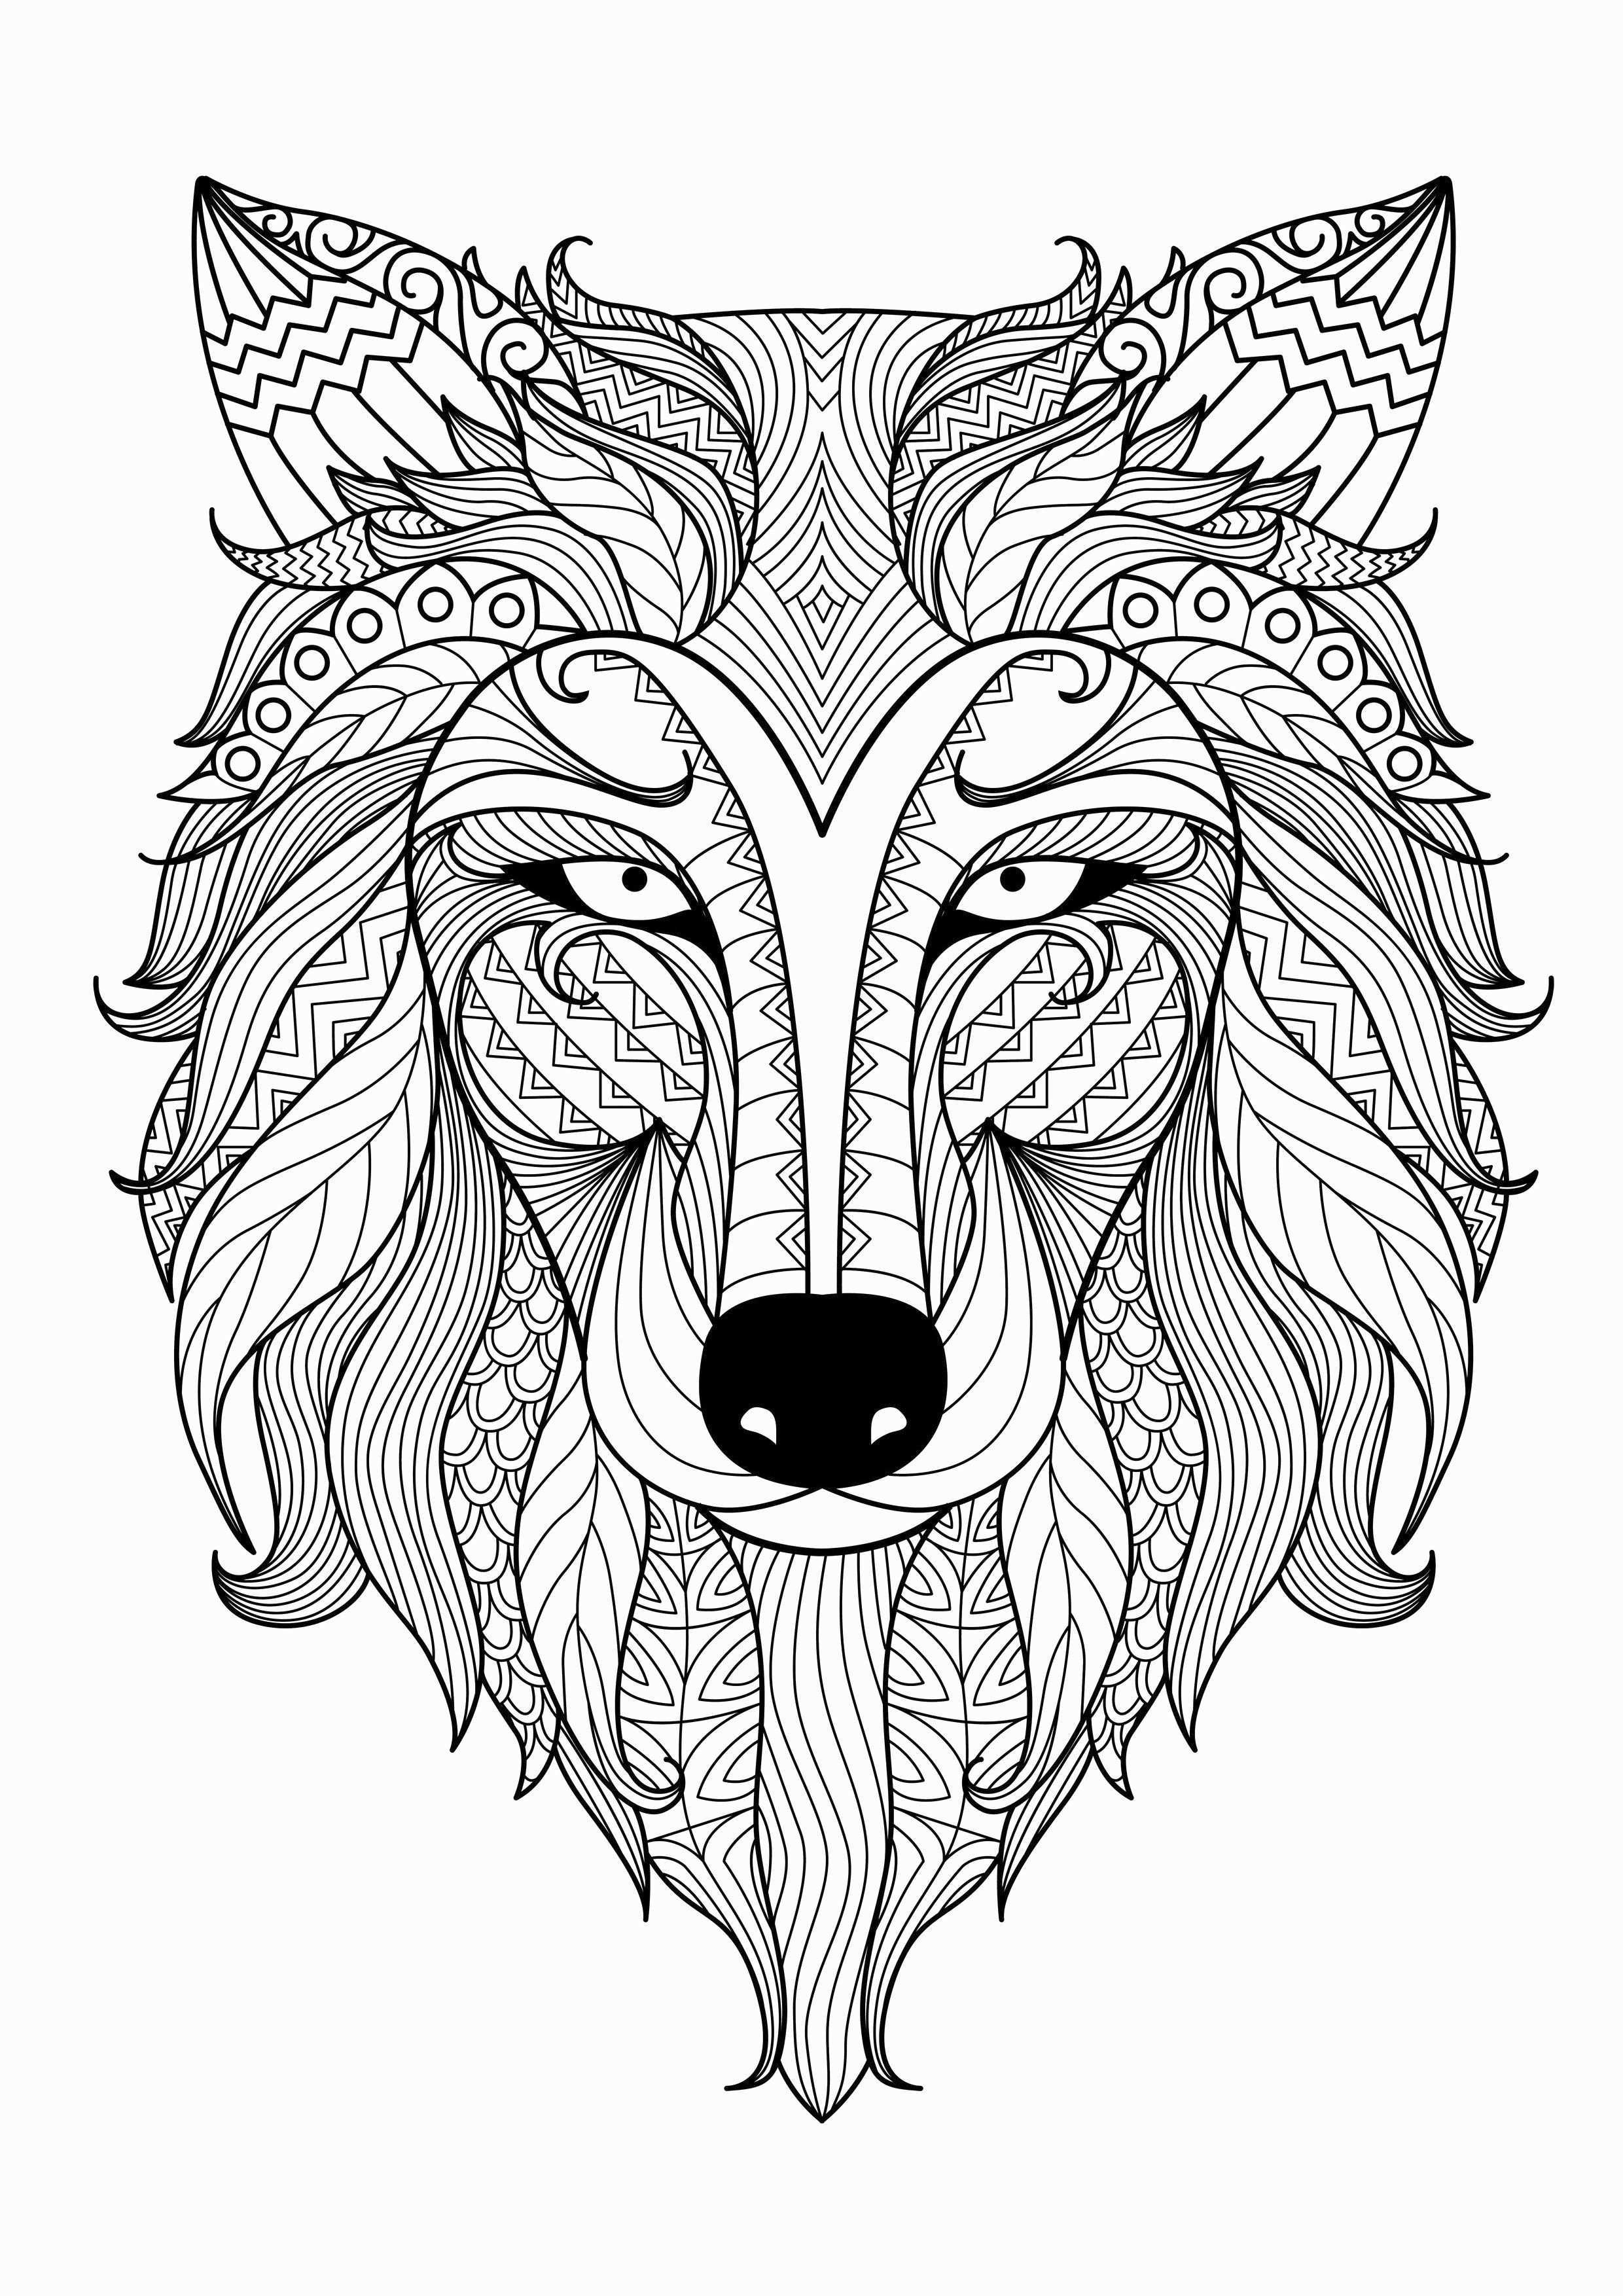 Coloring Pages Of A Tiger Luxury Printable Lion Coloring Pages Mandala Kleurplaten Kleurplaten Dieren Kleurplaten